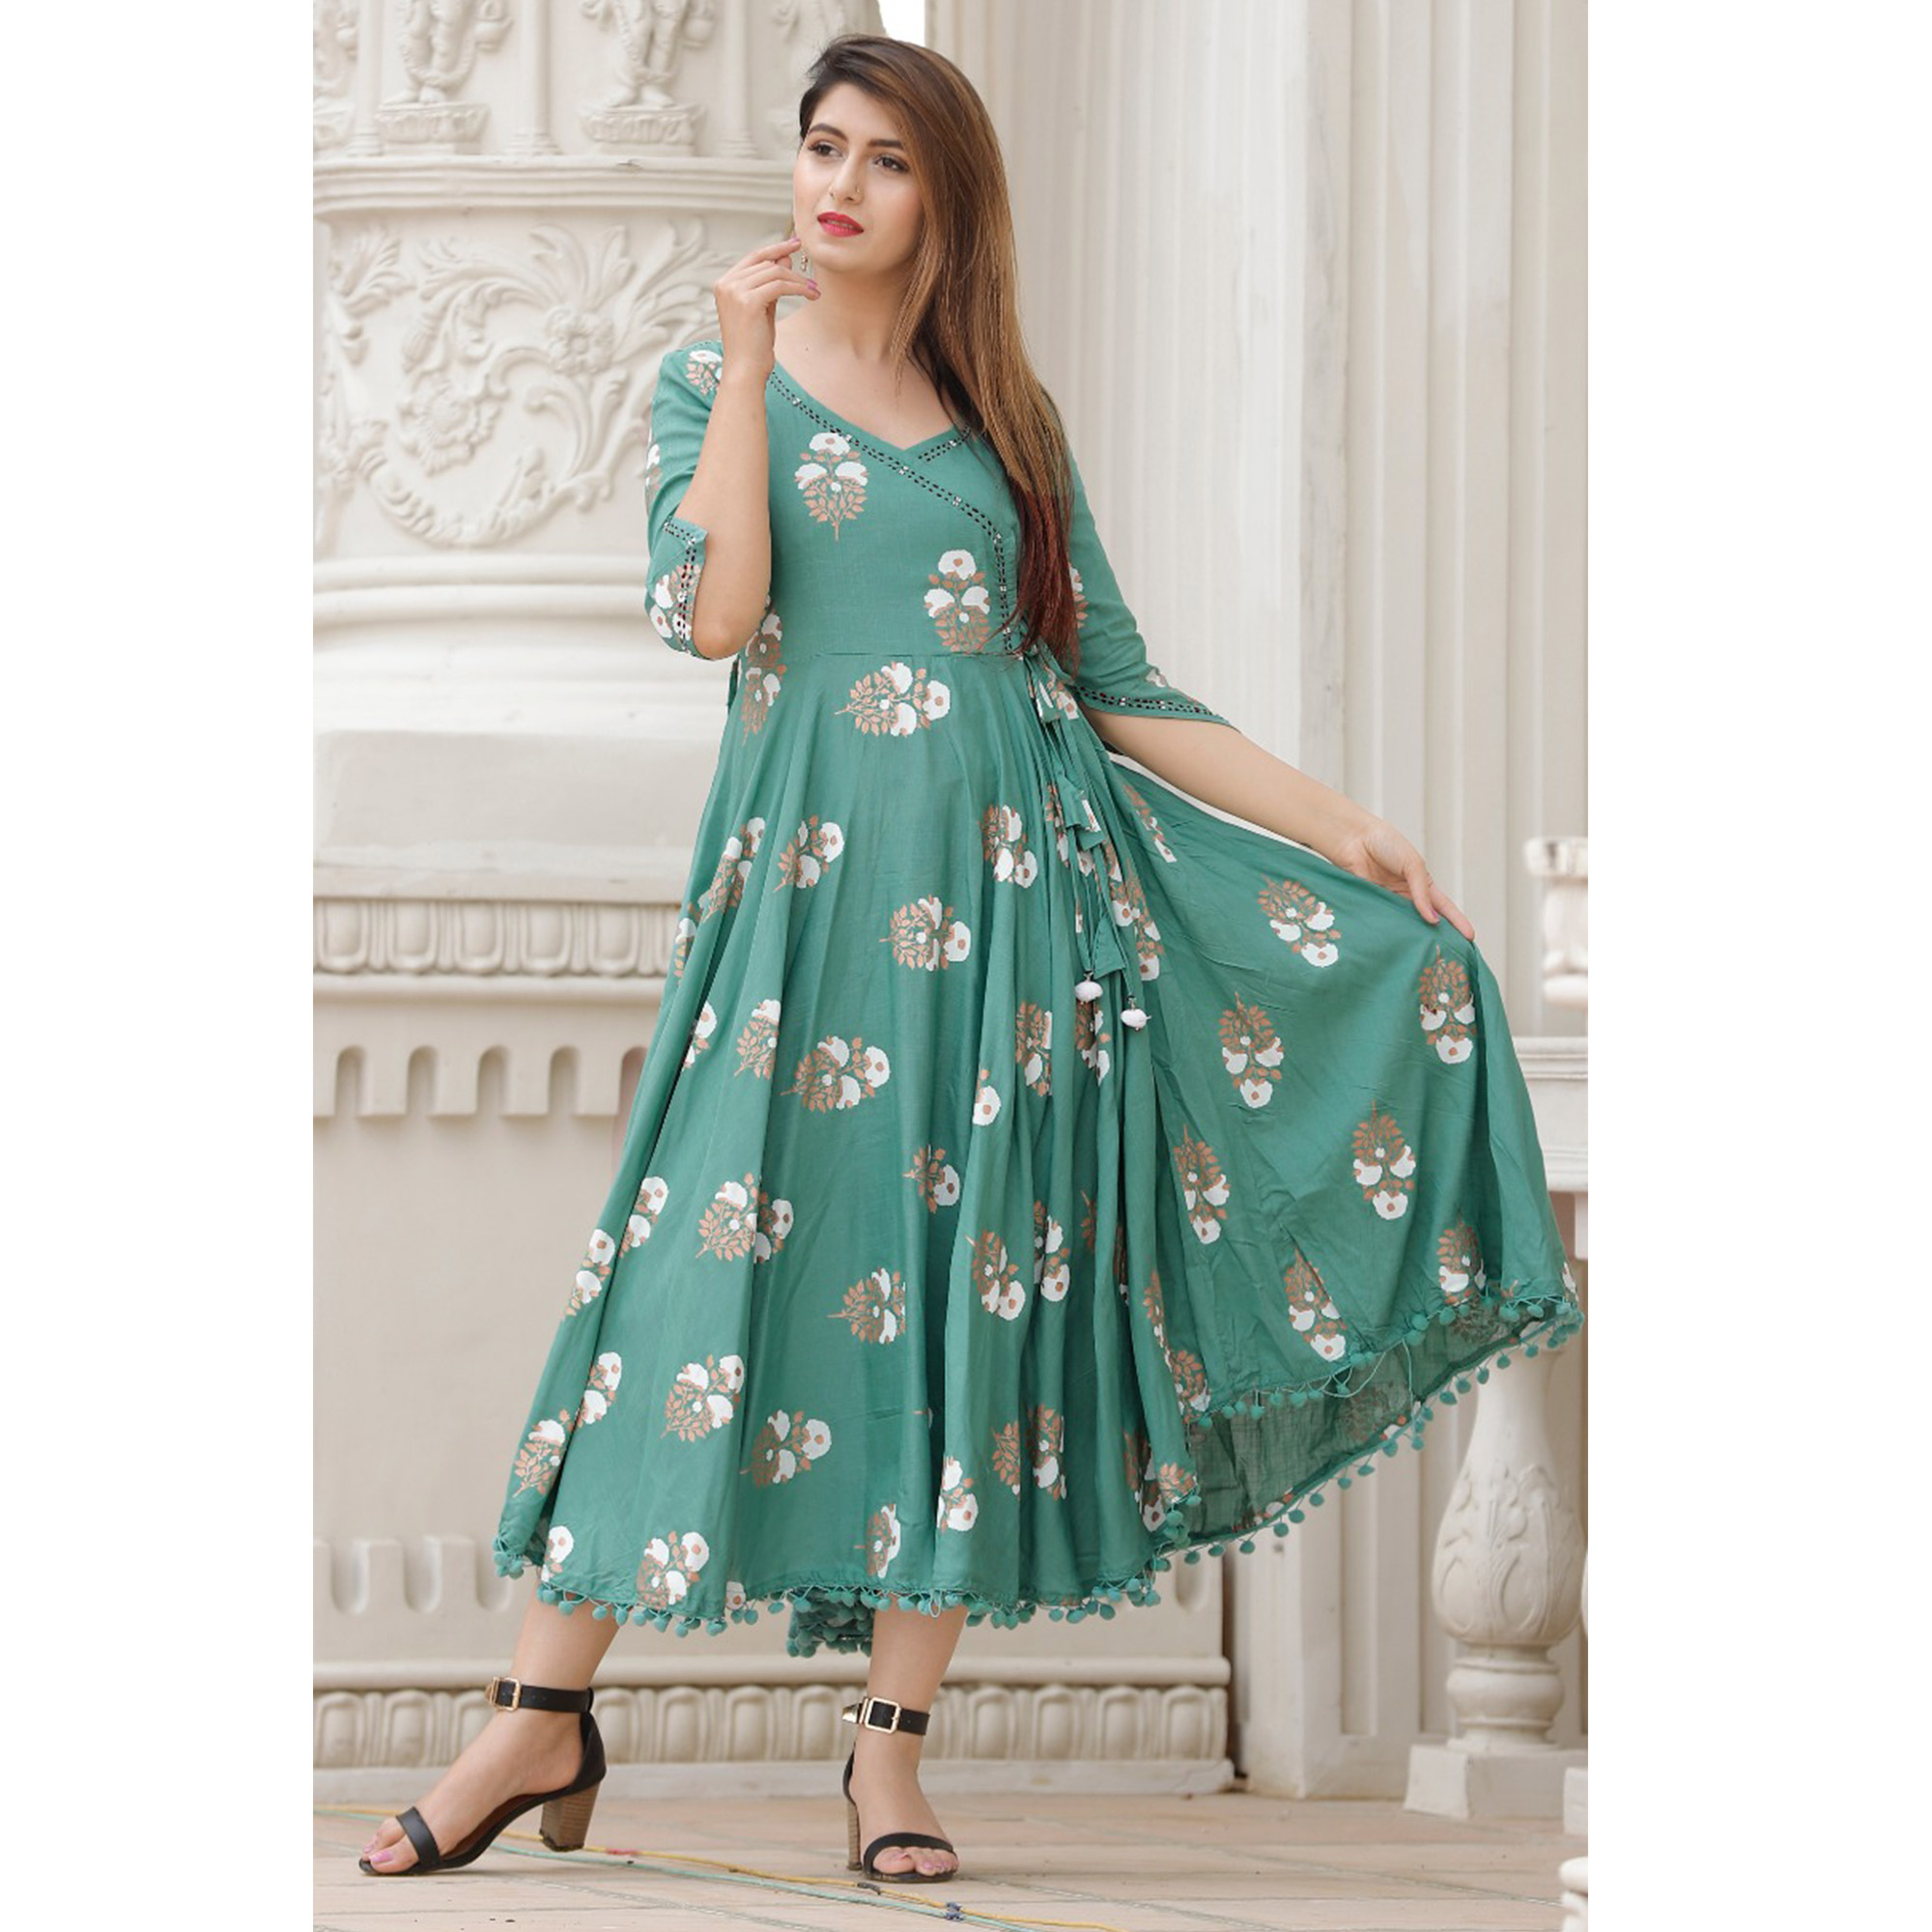 Classy Aqua Green Colored Party Wear Block Printed Rayon Kurti With Stole